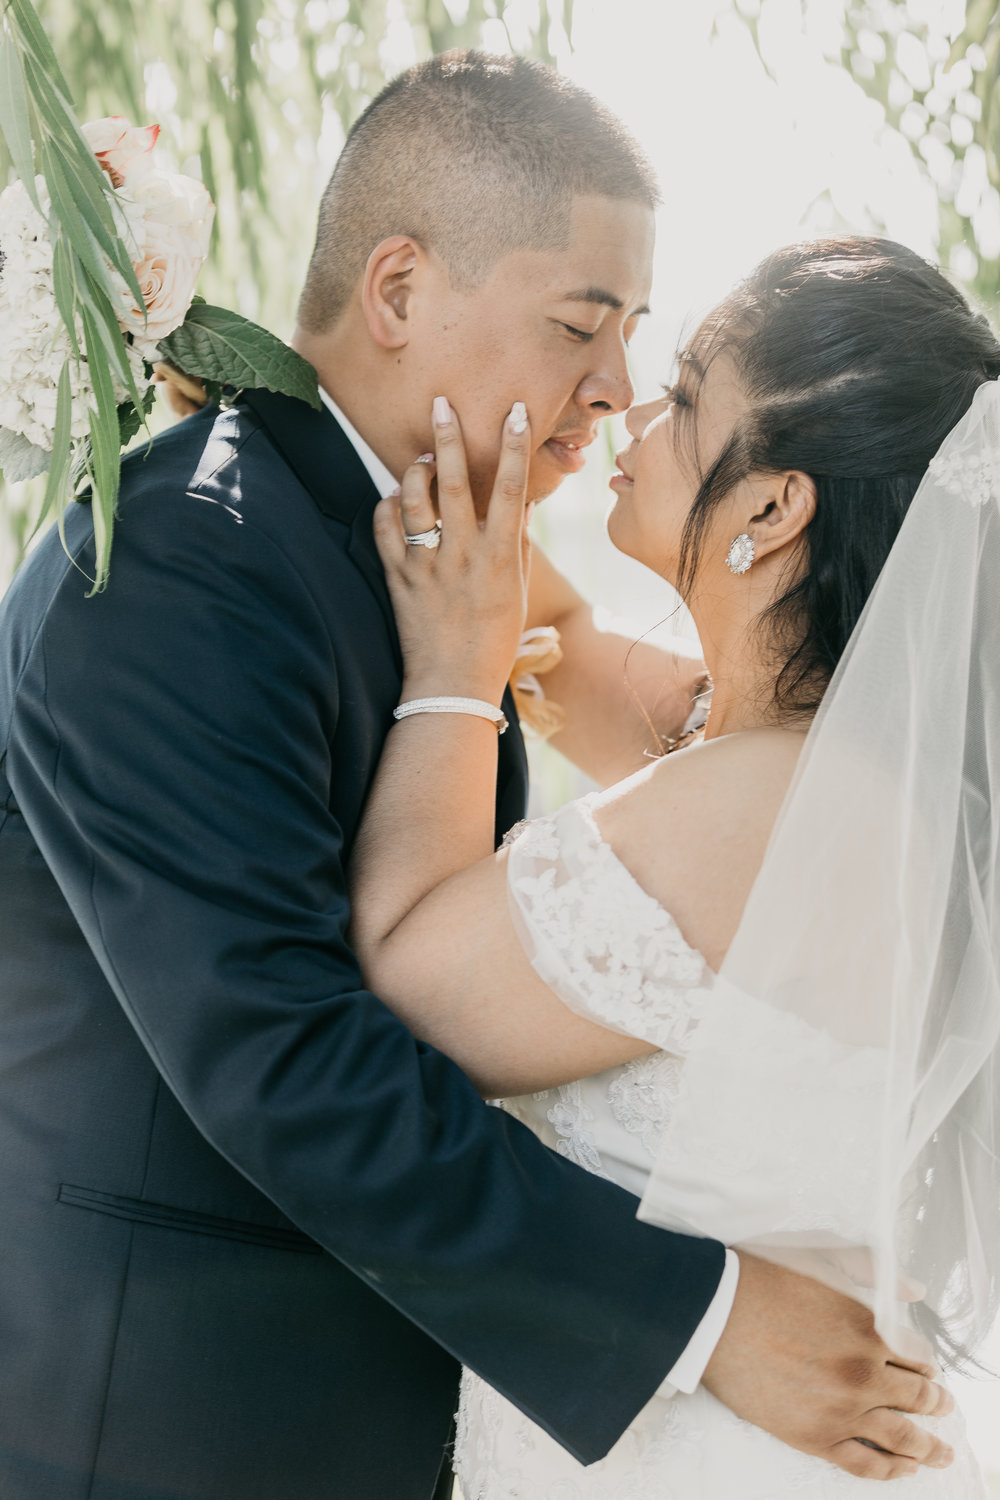 D+J_WeddingPhotos_09092018-338.JPG